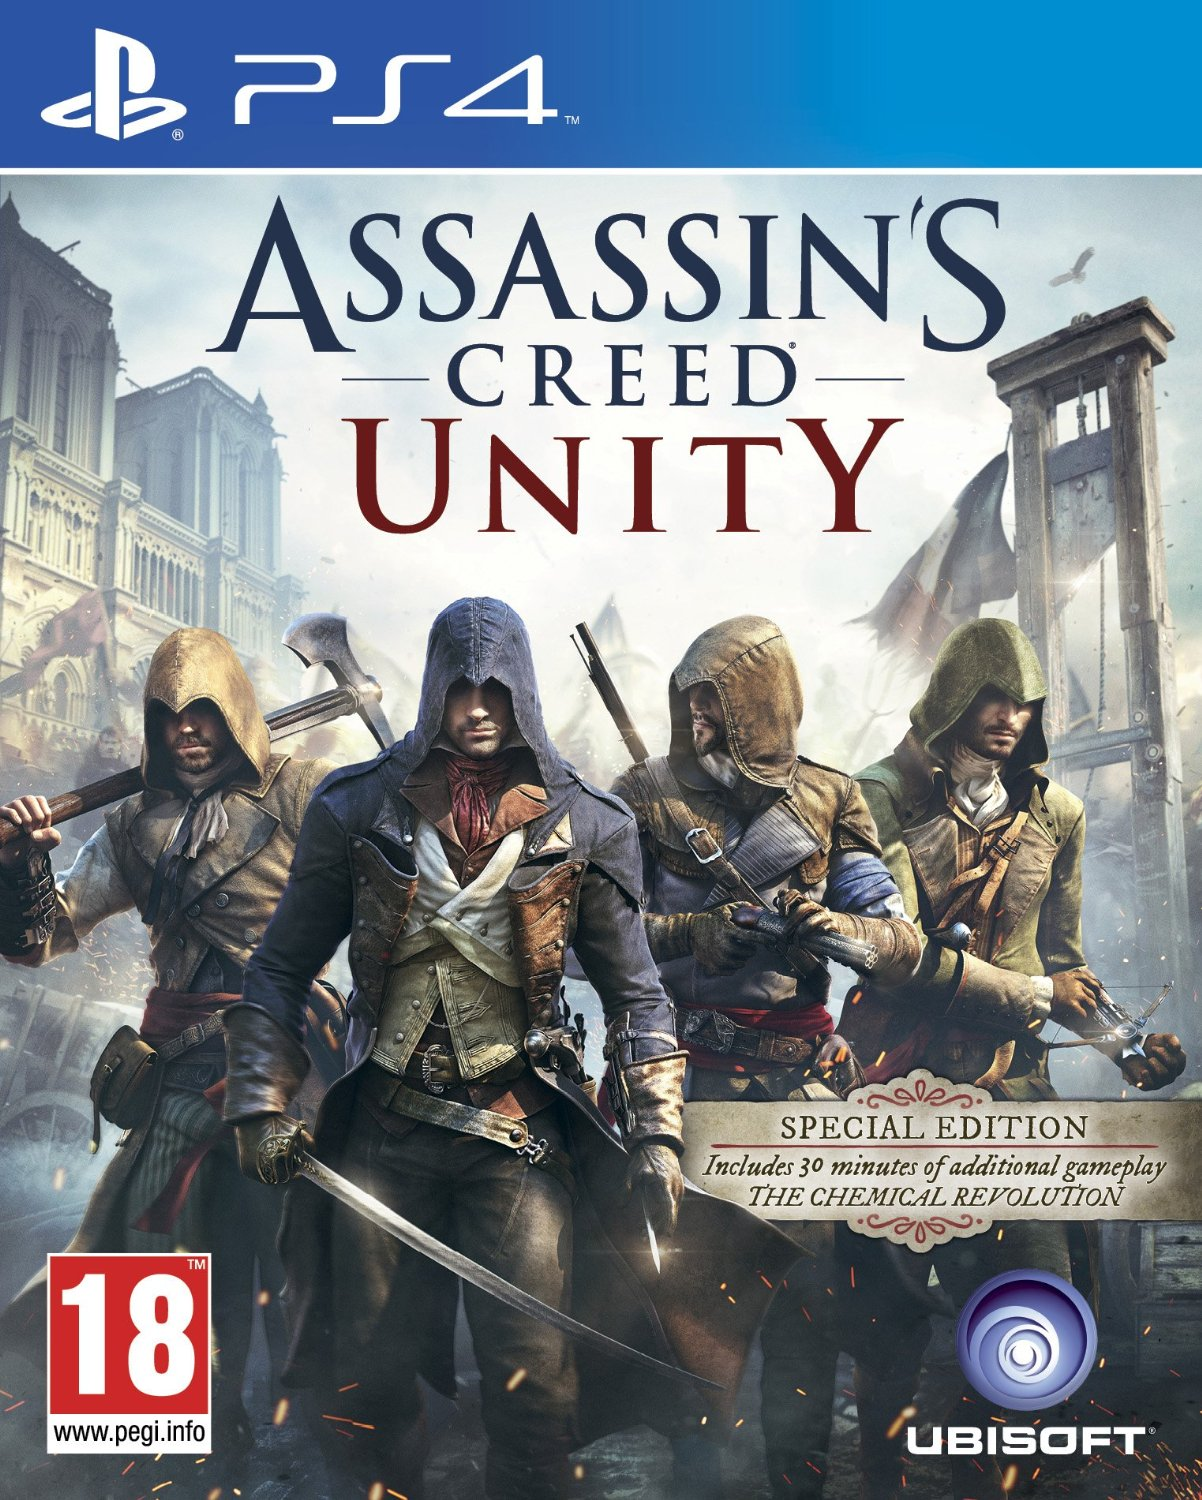 Assassin's Creed: Unity [PS4] 5.05 / 6.72 / 7.02 [EUR] (2014) [Русский] (v1.05)